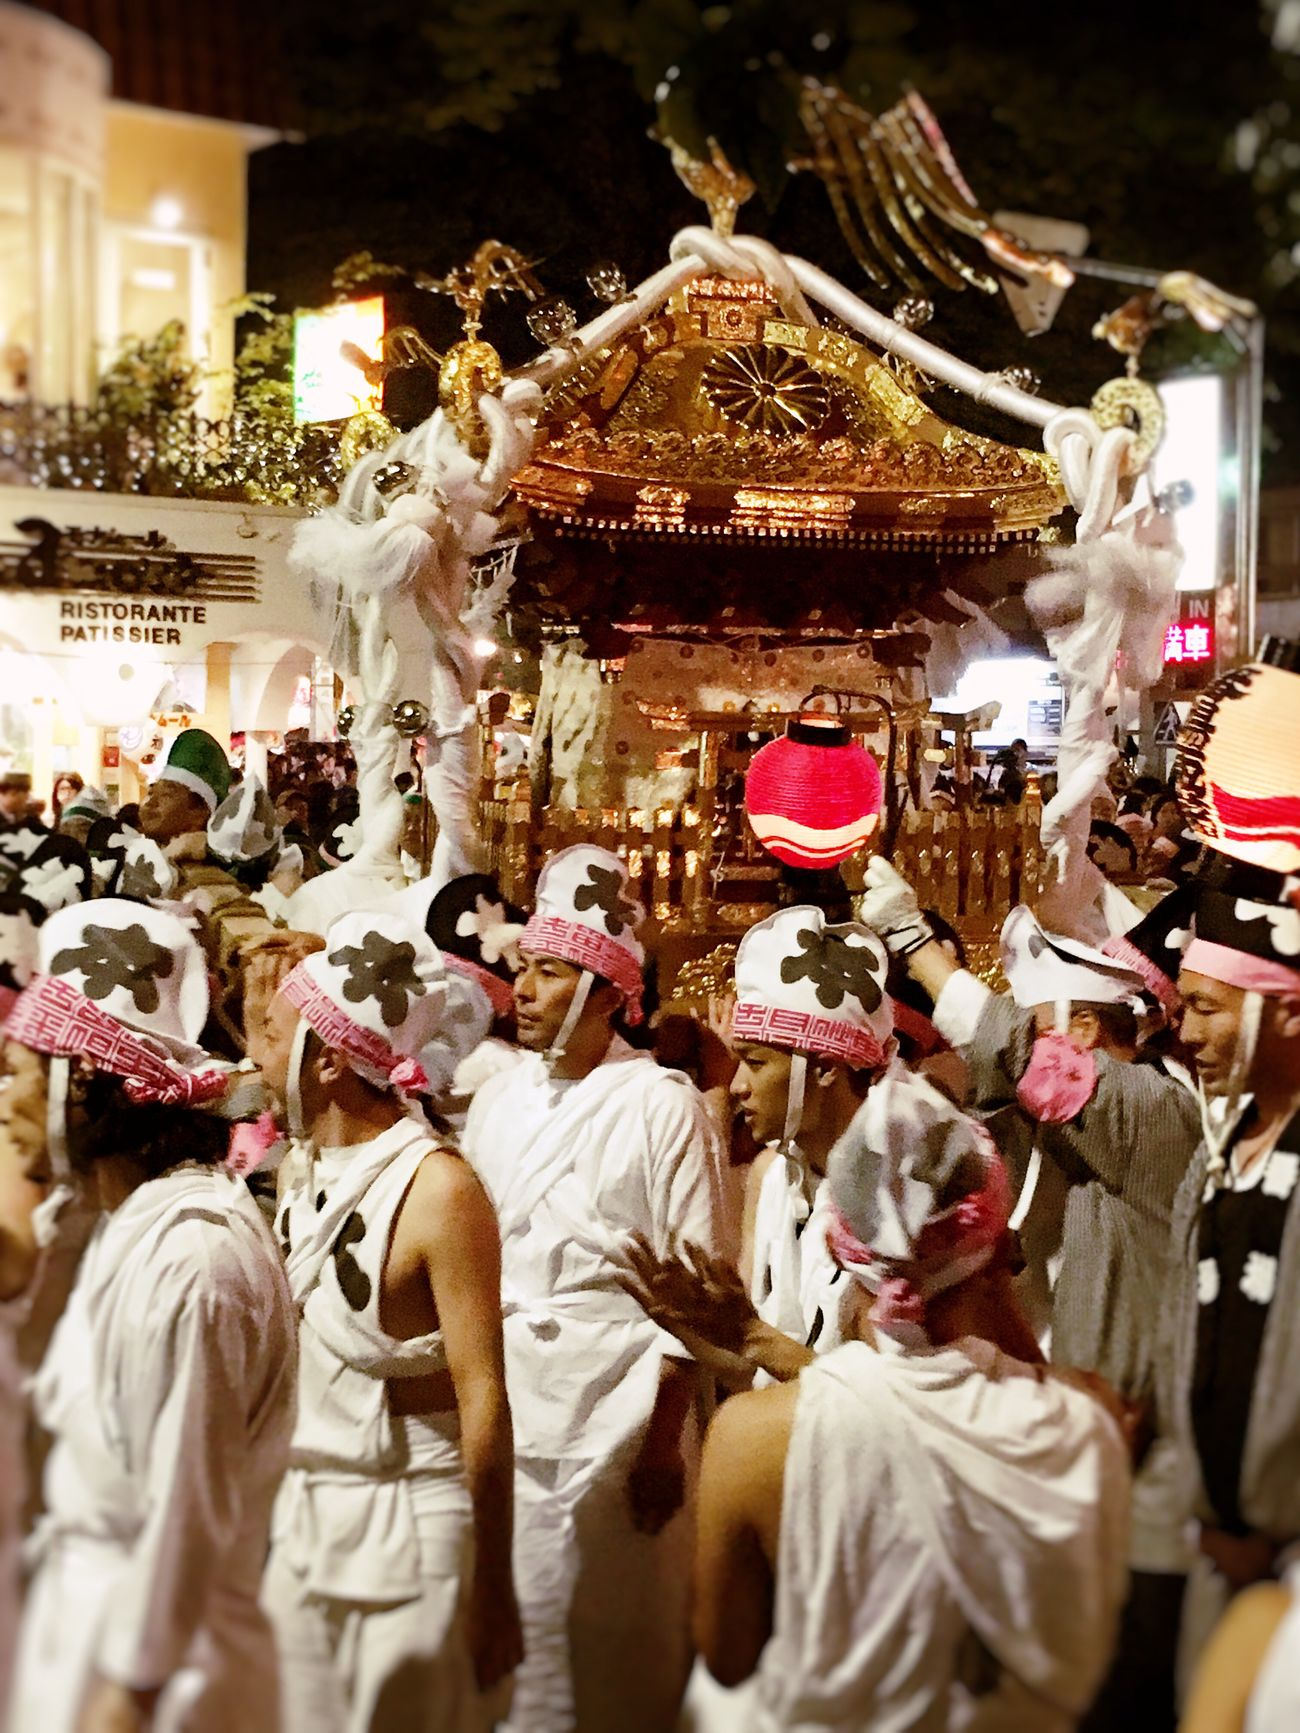 大國魂神社 くらやみ祭り Tokyo,Japan Japan Japanese Culture Festival Shrine TheOldShrine